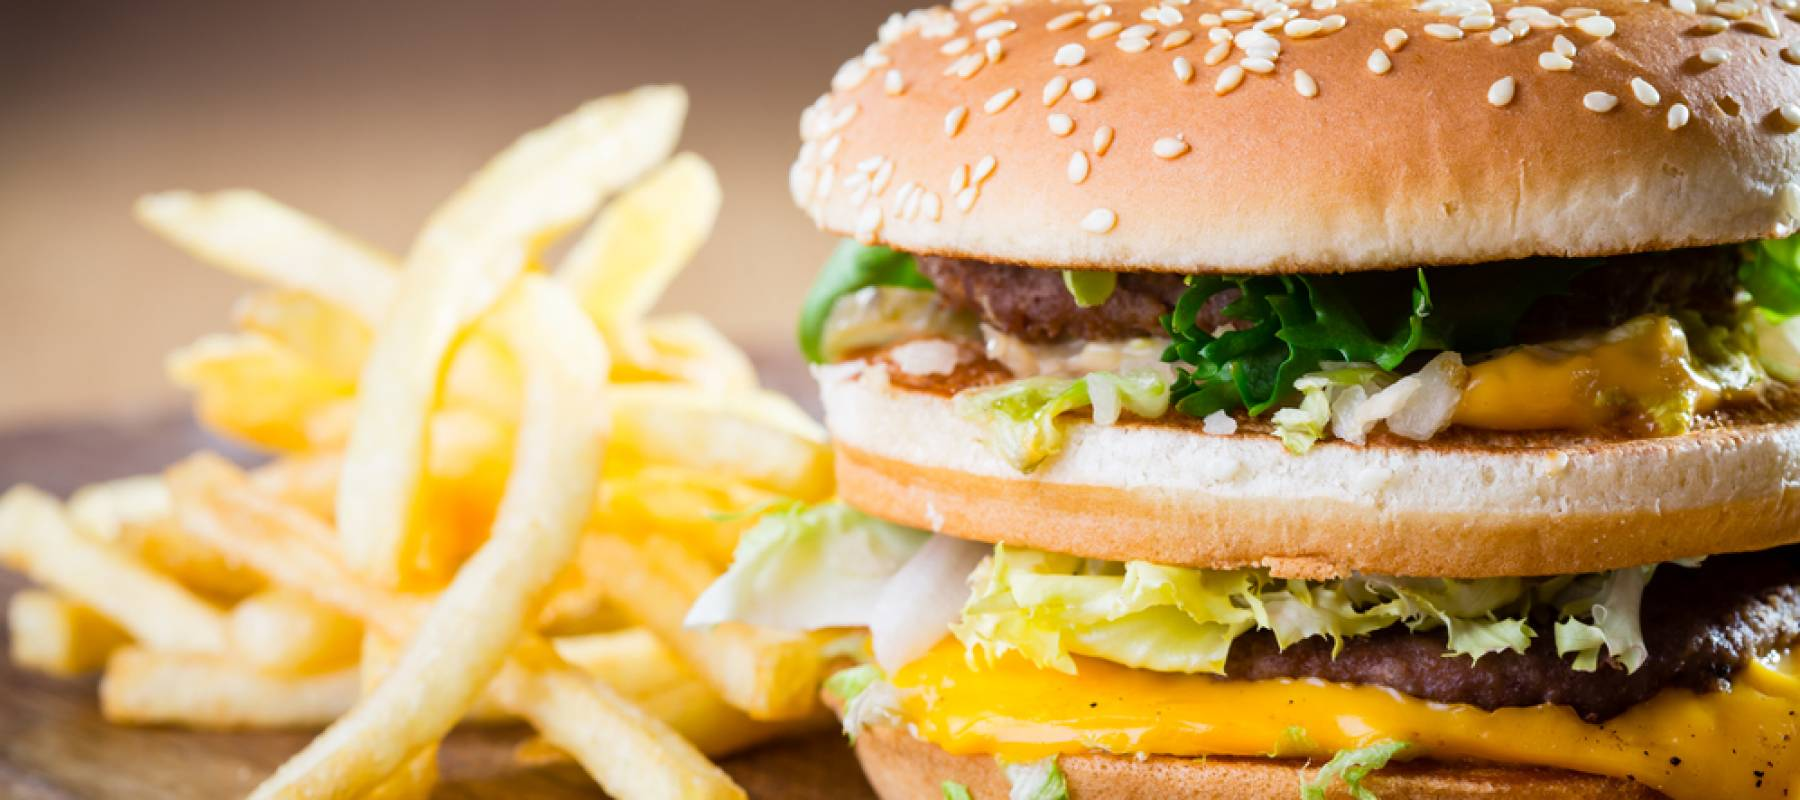 The Most Popular Fast-Food Chains and